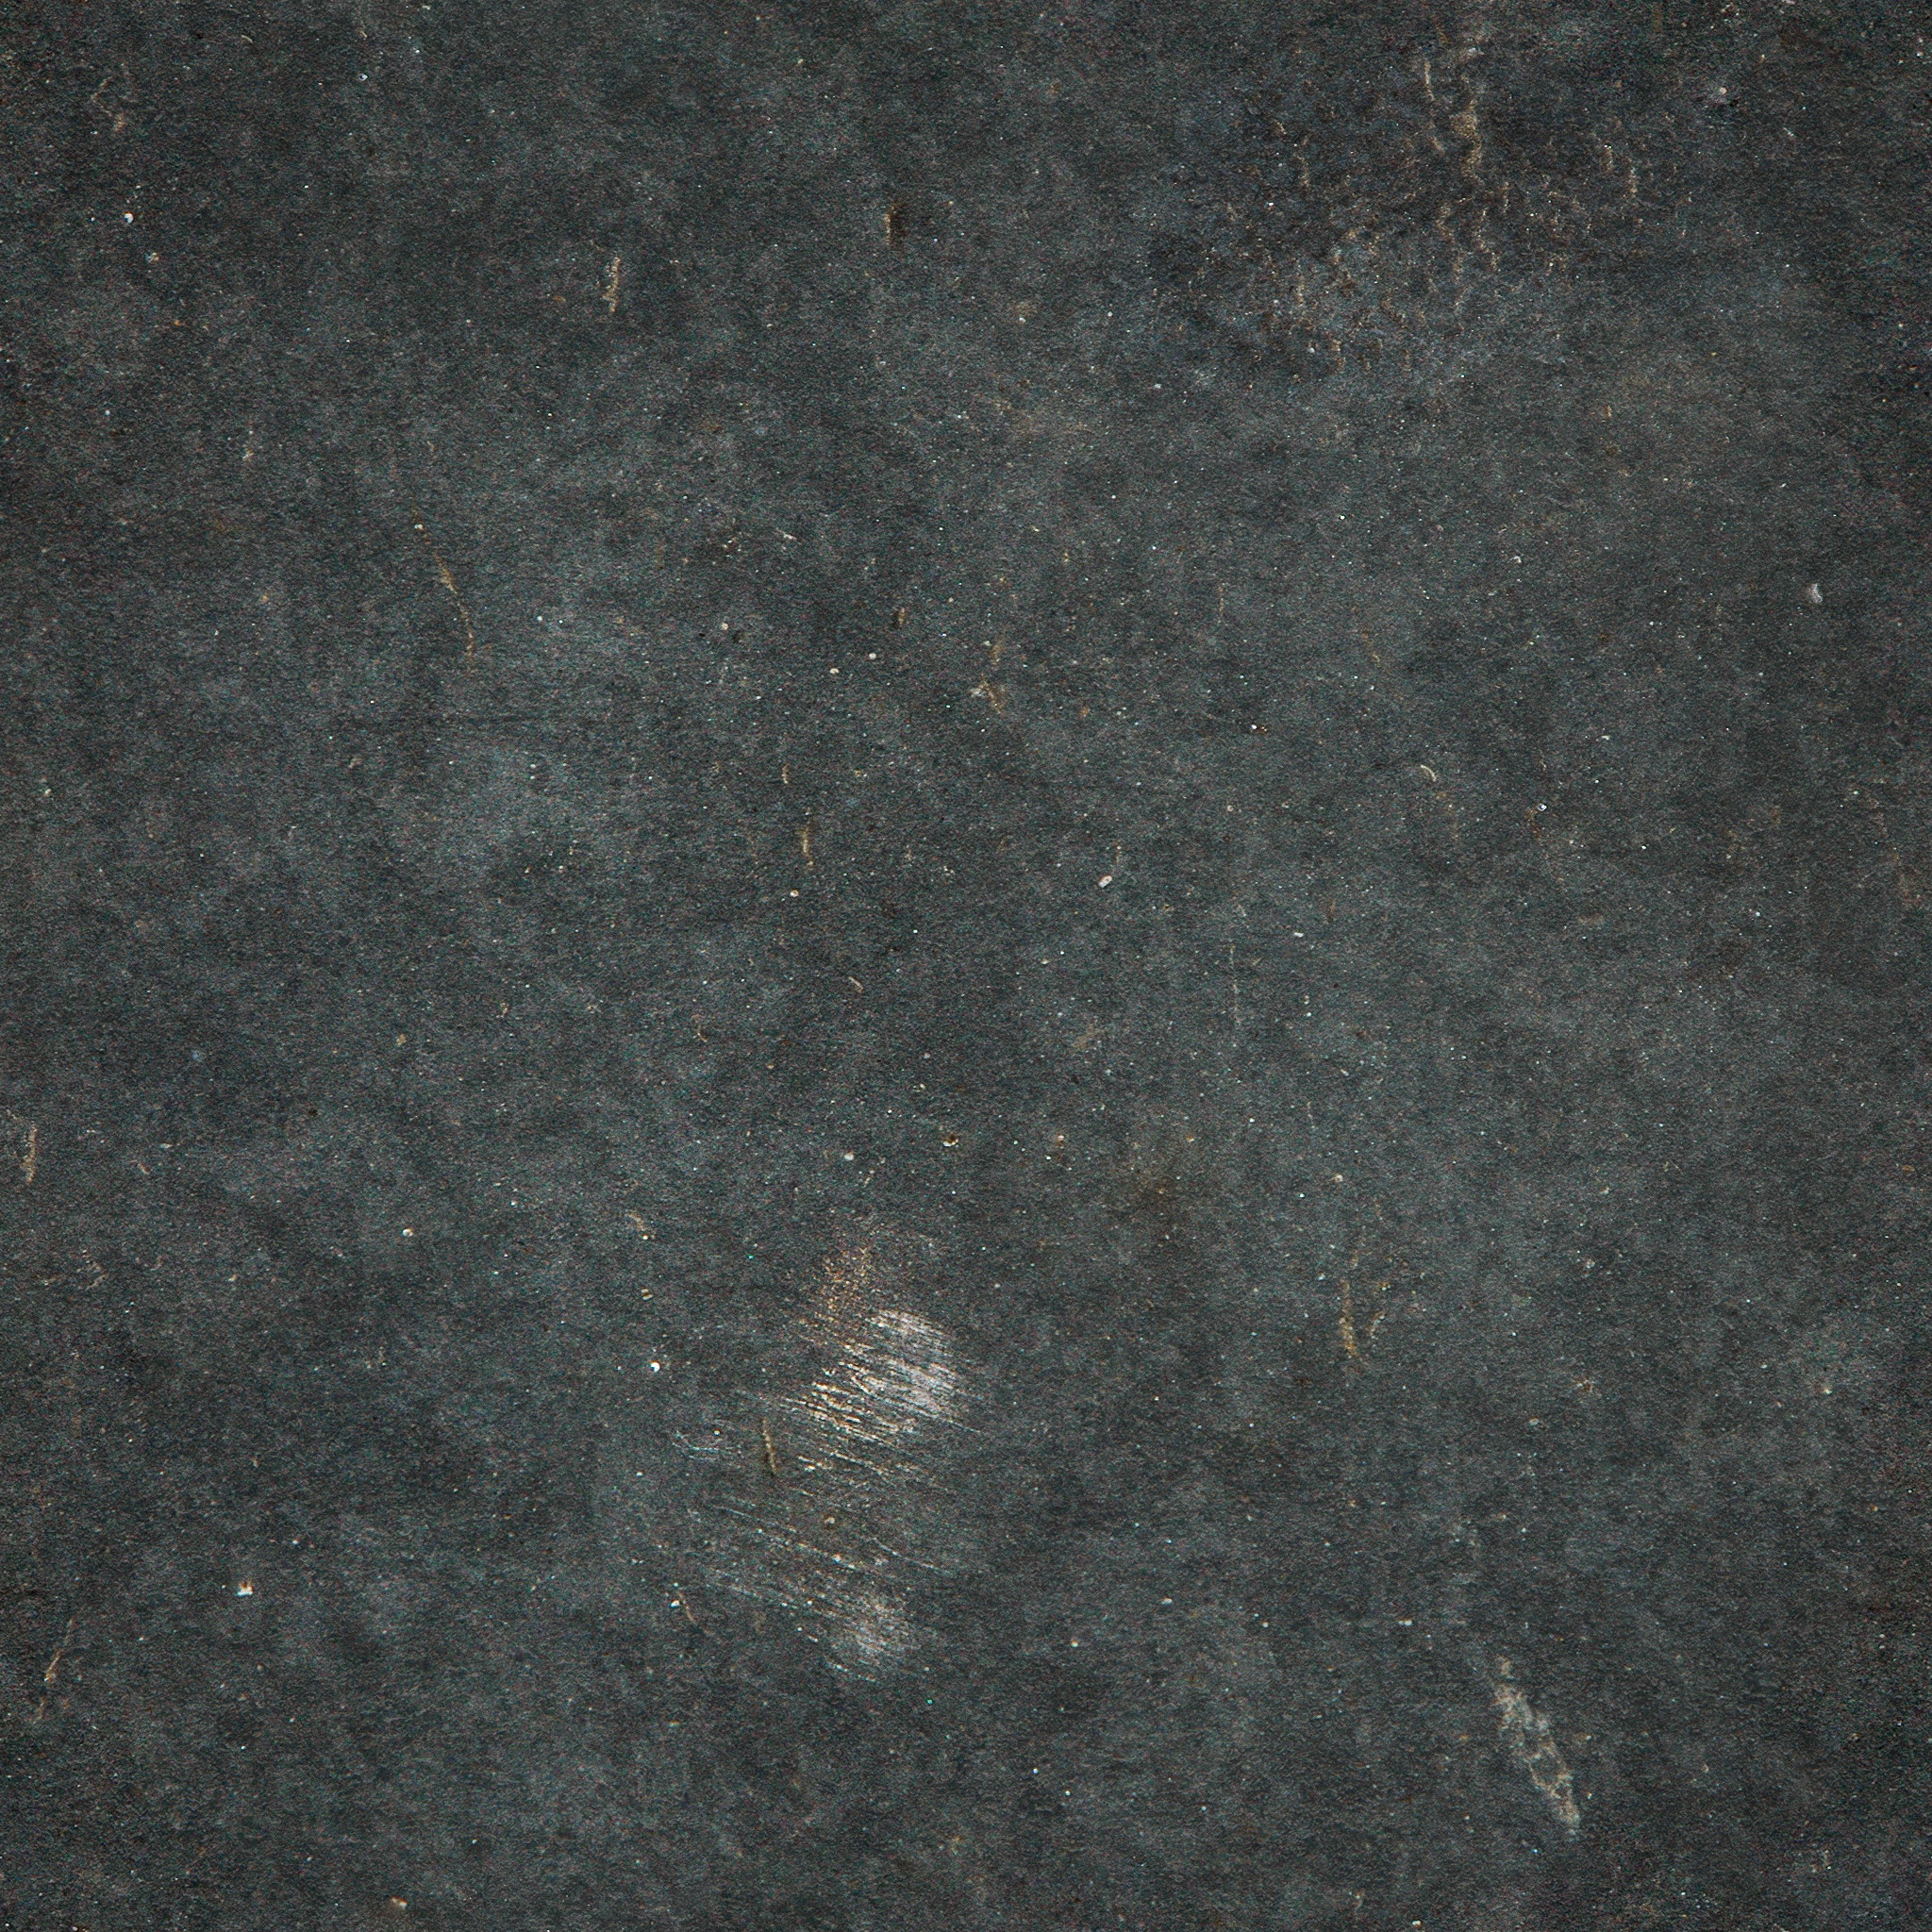 Paved texture #2 - Seamless - 2K